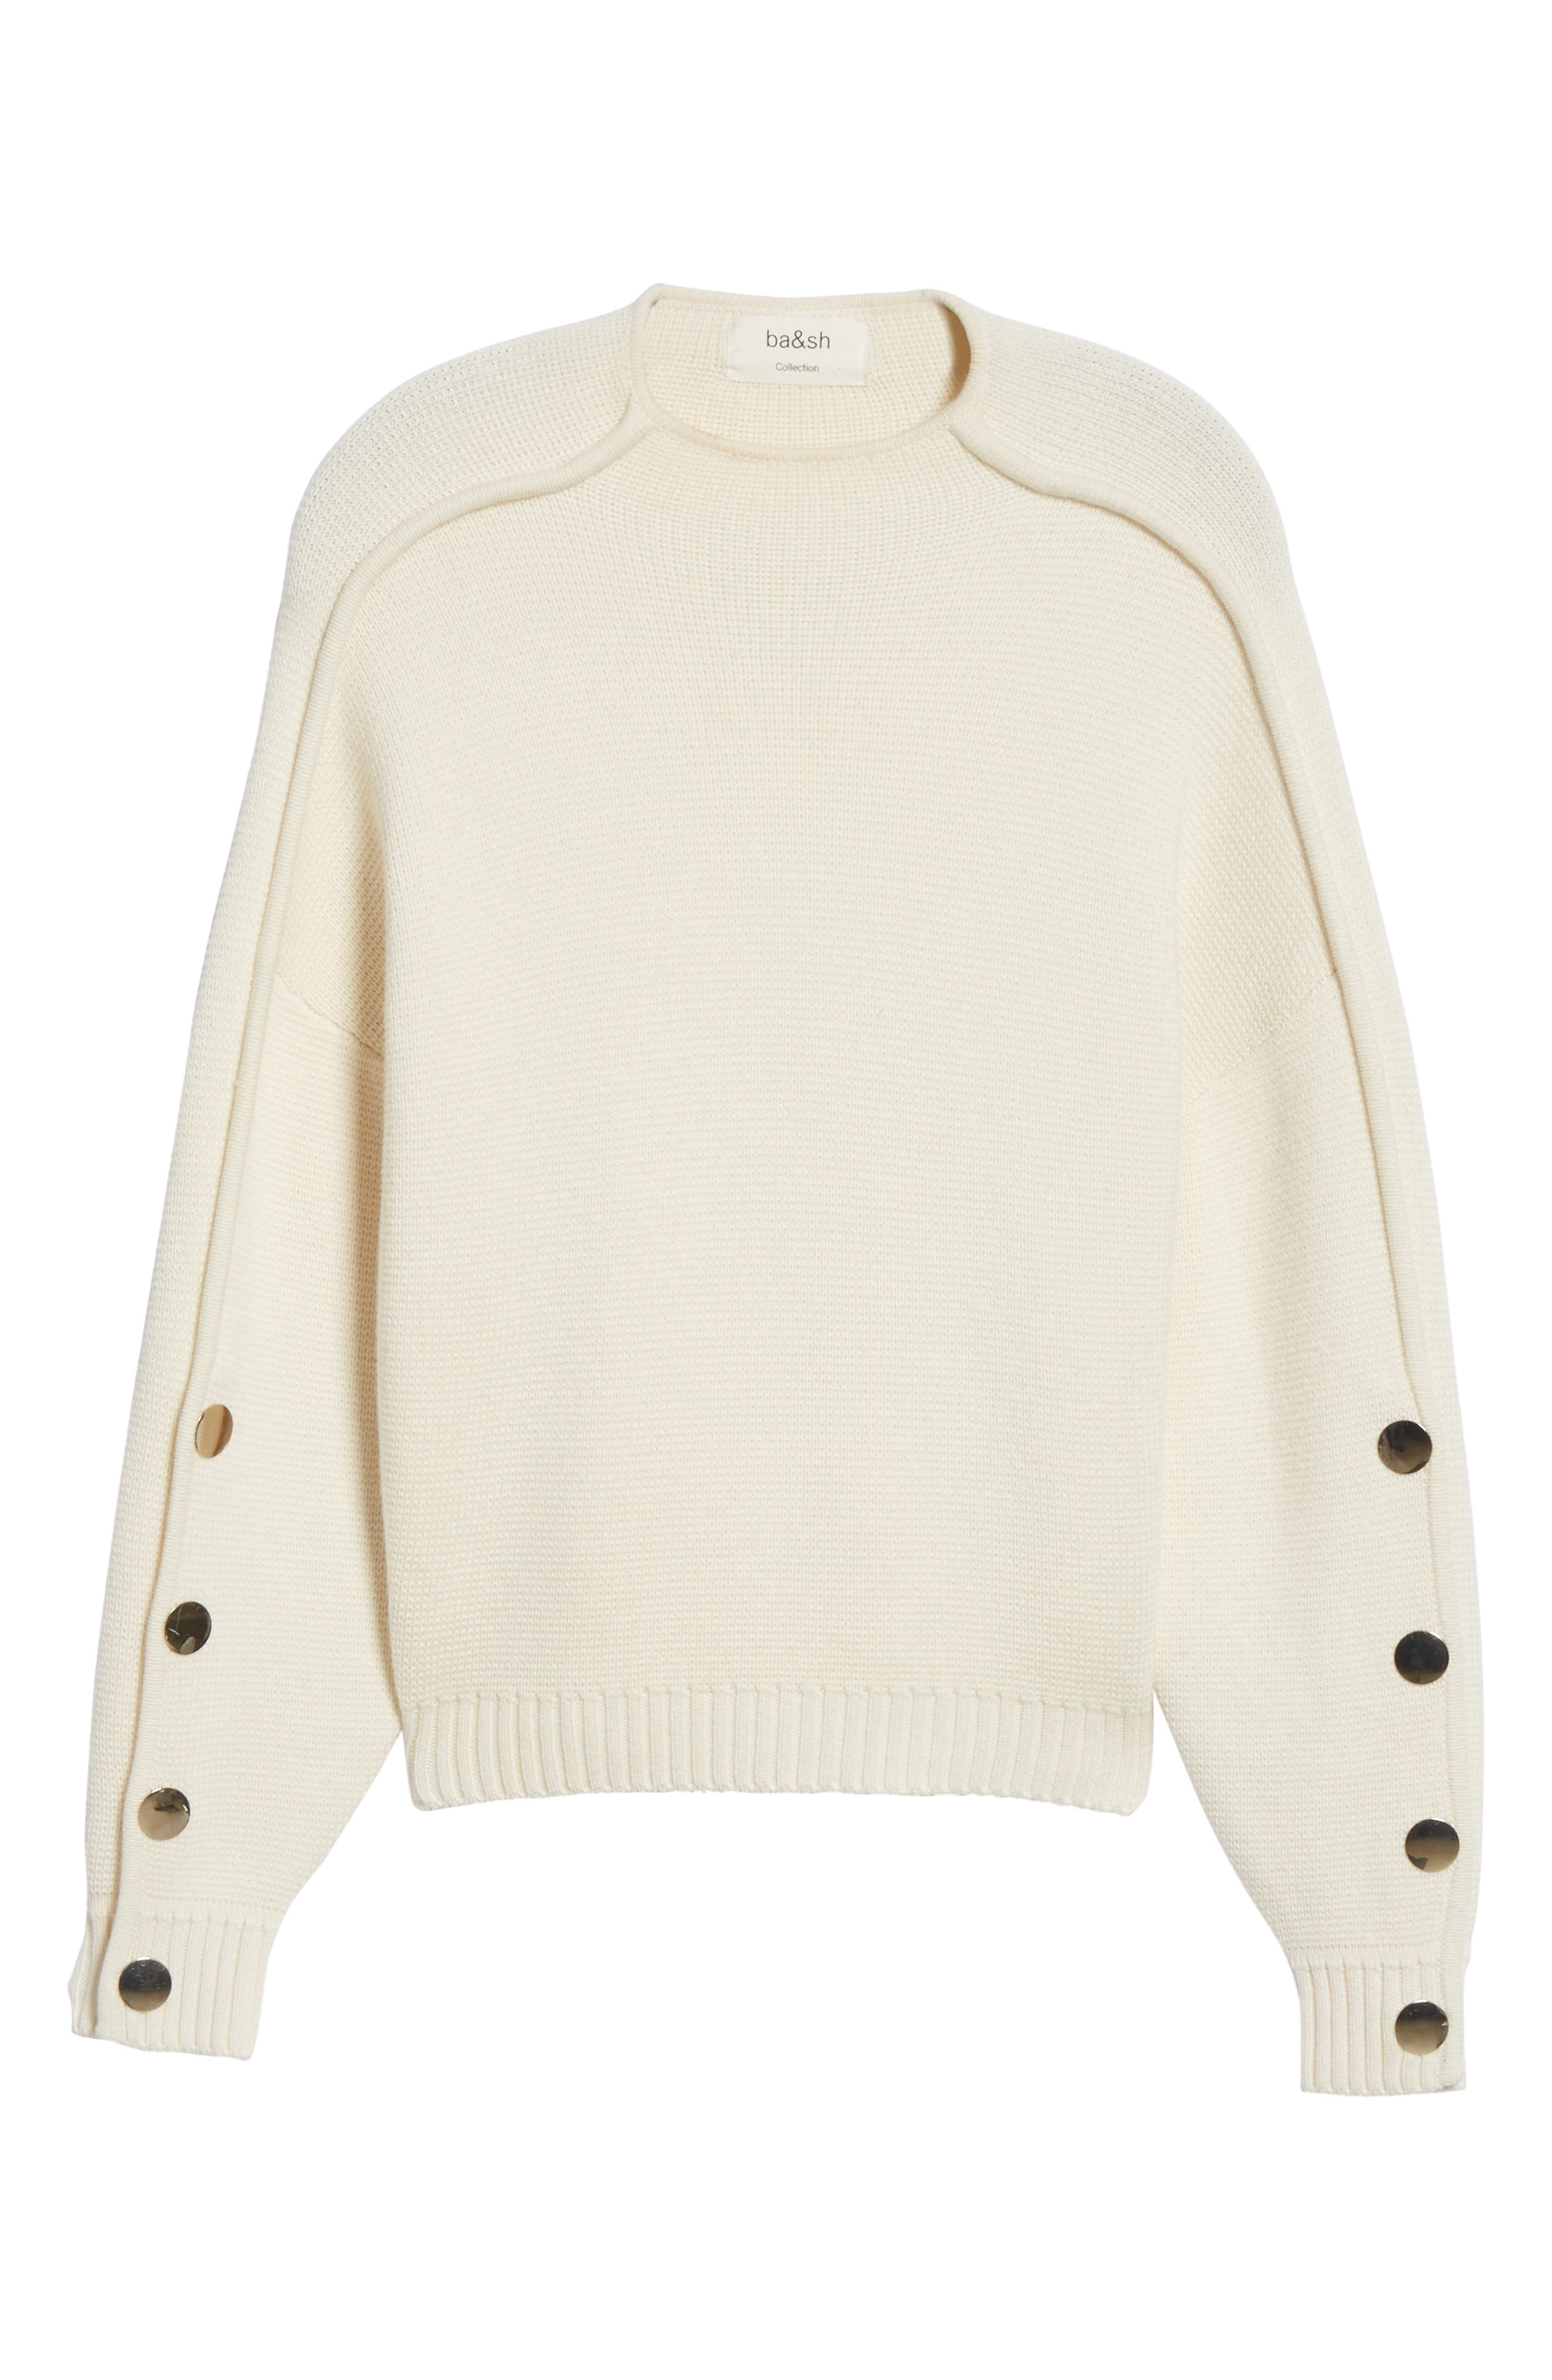 Astana Button Sleeve Waffle Weave Cotton Wool Sweater,                             Alternate thumbnail 6, color,                             900